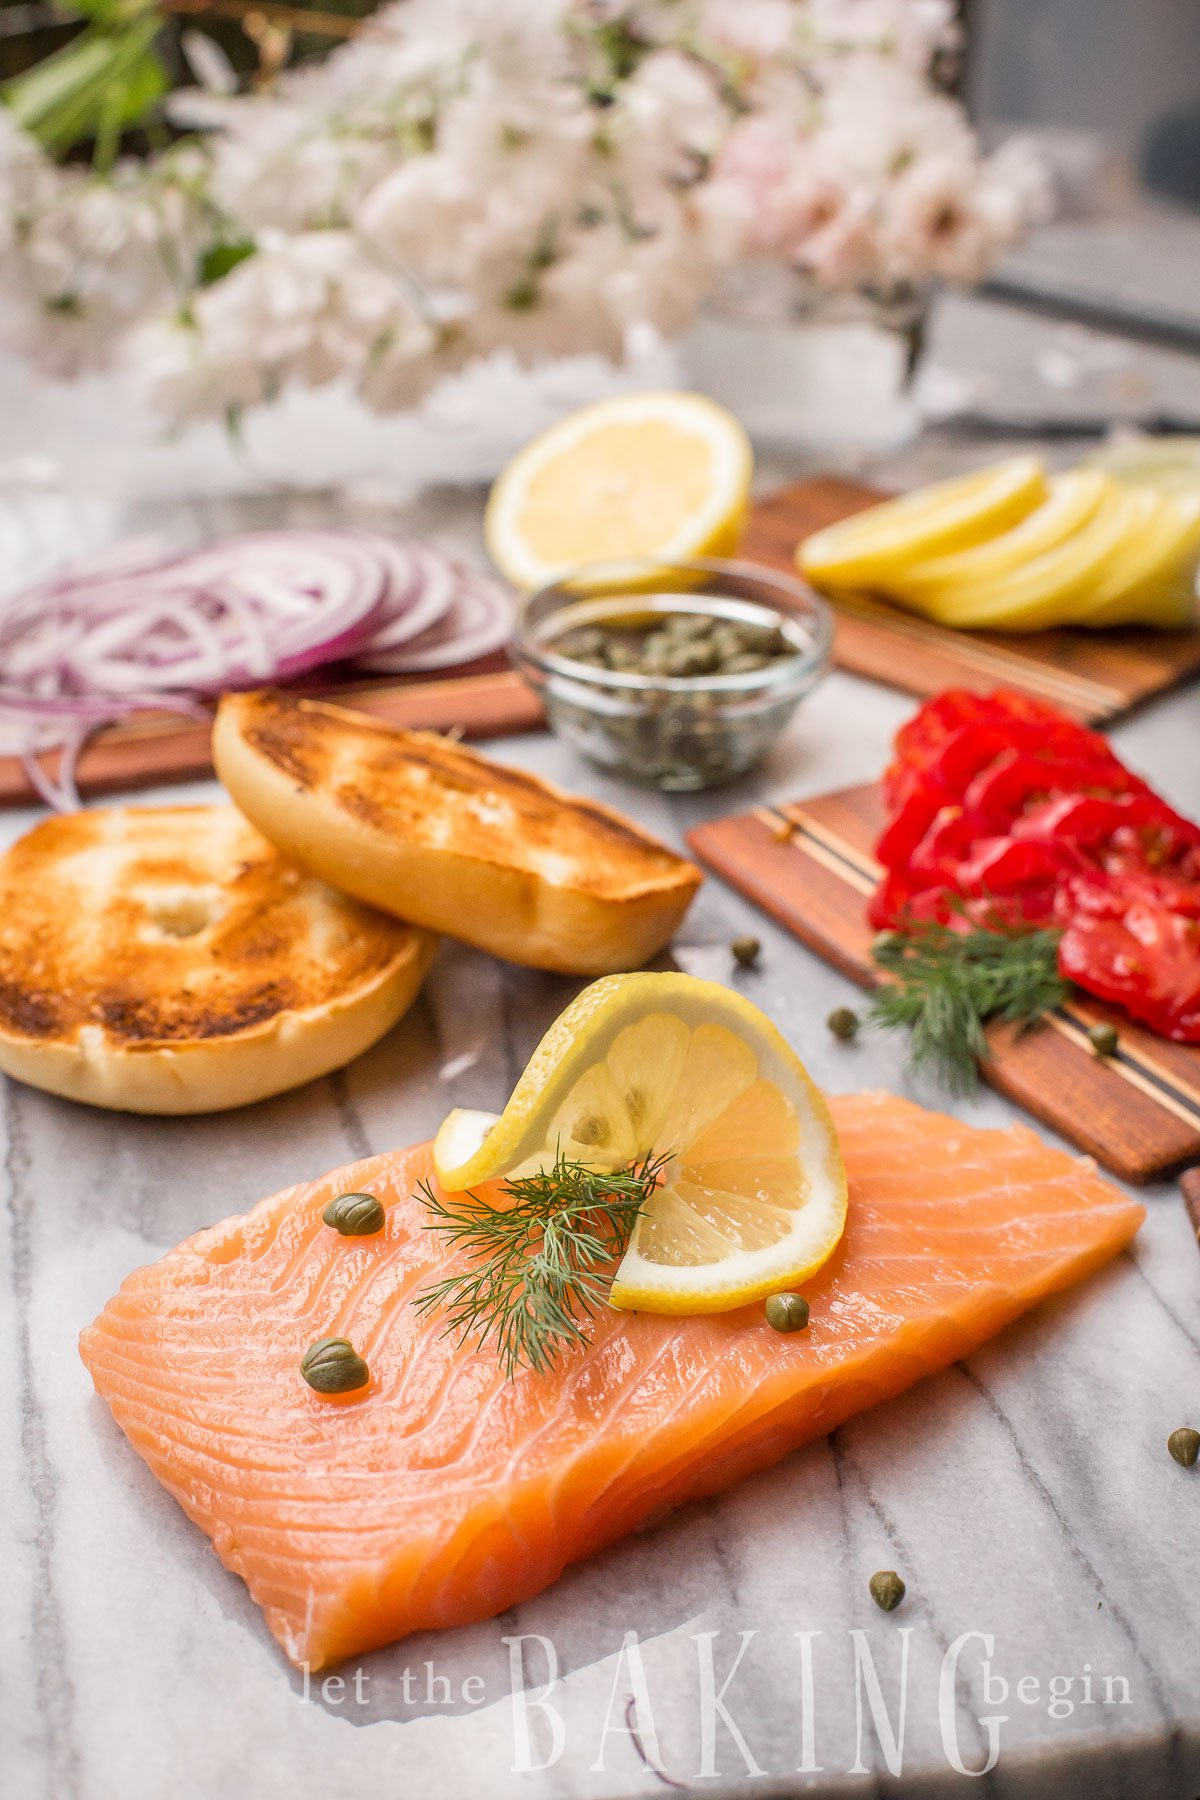 Smoked salmon with fresh lemon and dill, onions and bagel slices.